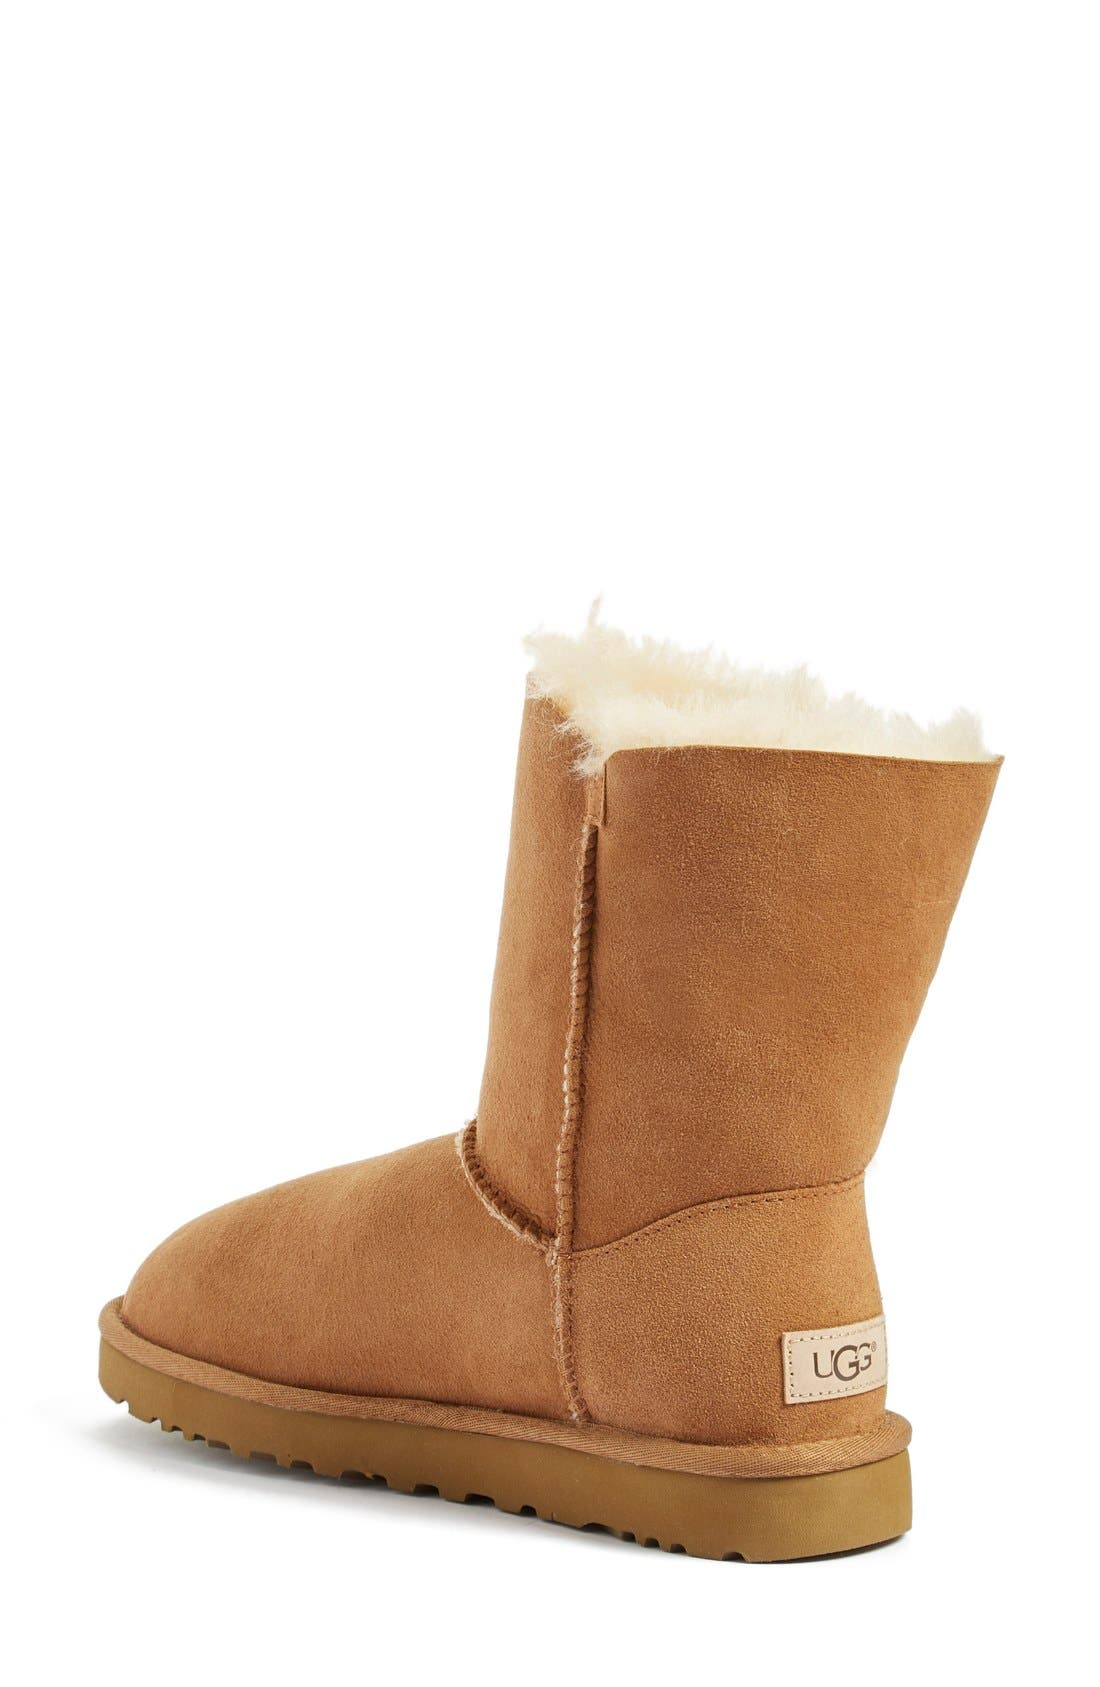 Bailey Button II Boot,                             Alternate thumbnail 2, color,                             CHESTNUT SUEDE